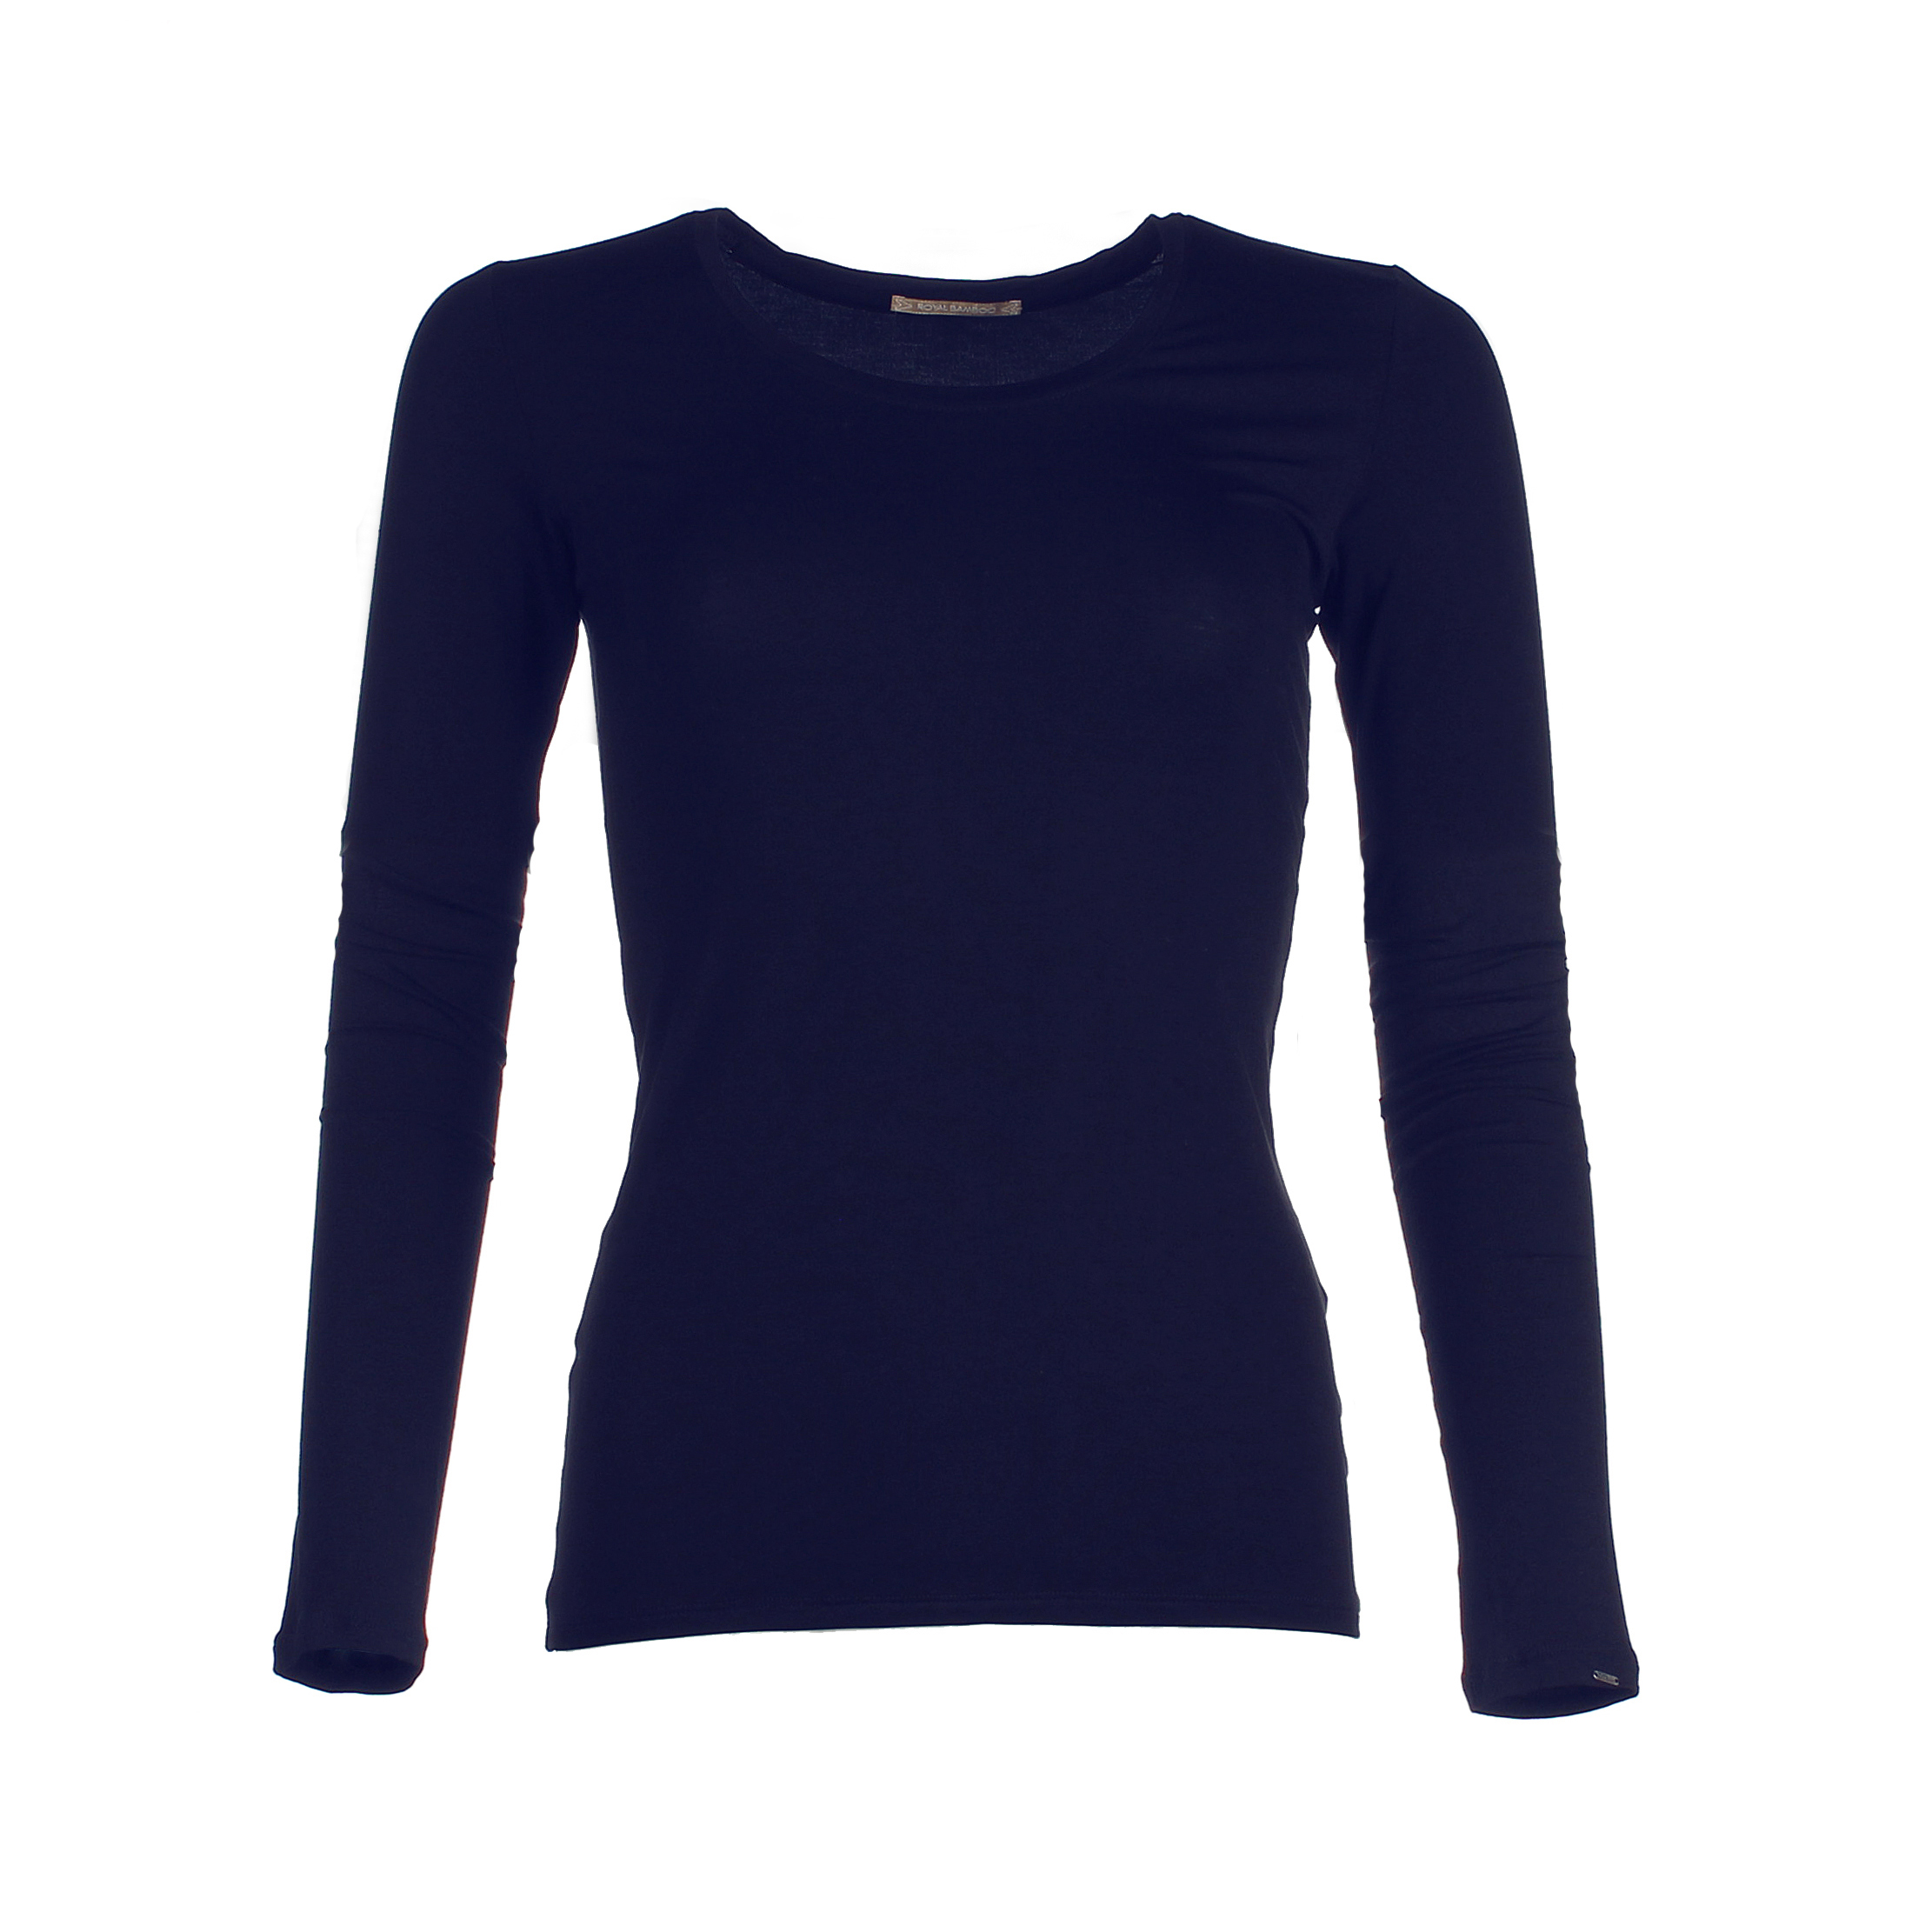 MARINE Perfect, klassiek, Marine, Navy, Donker Blauw